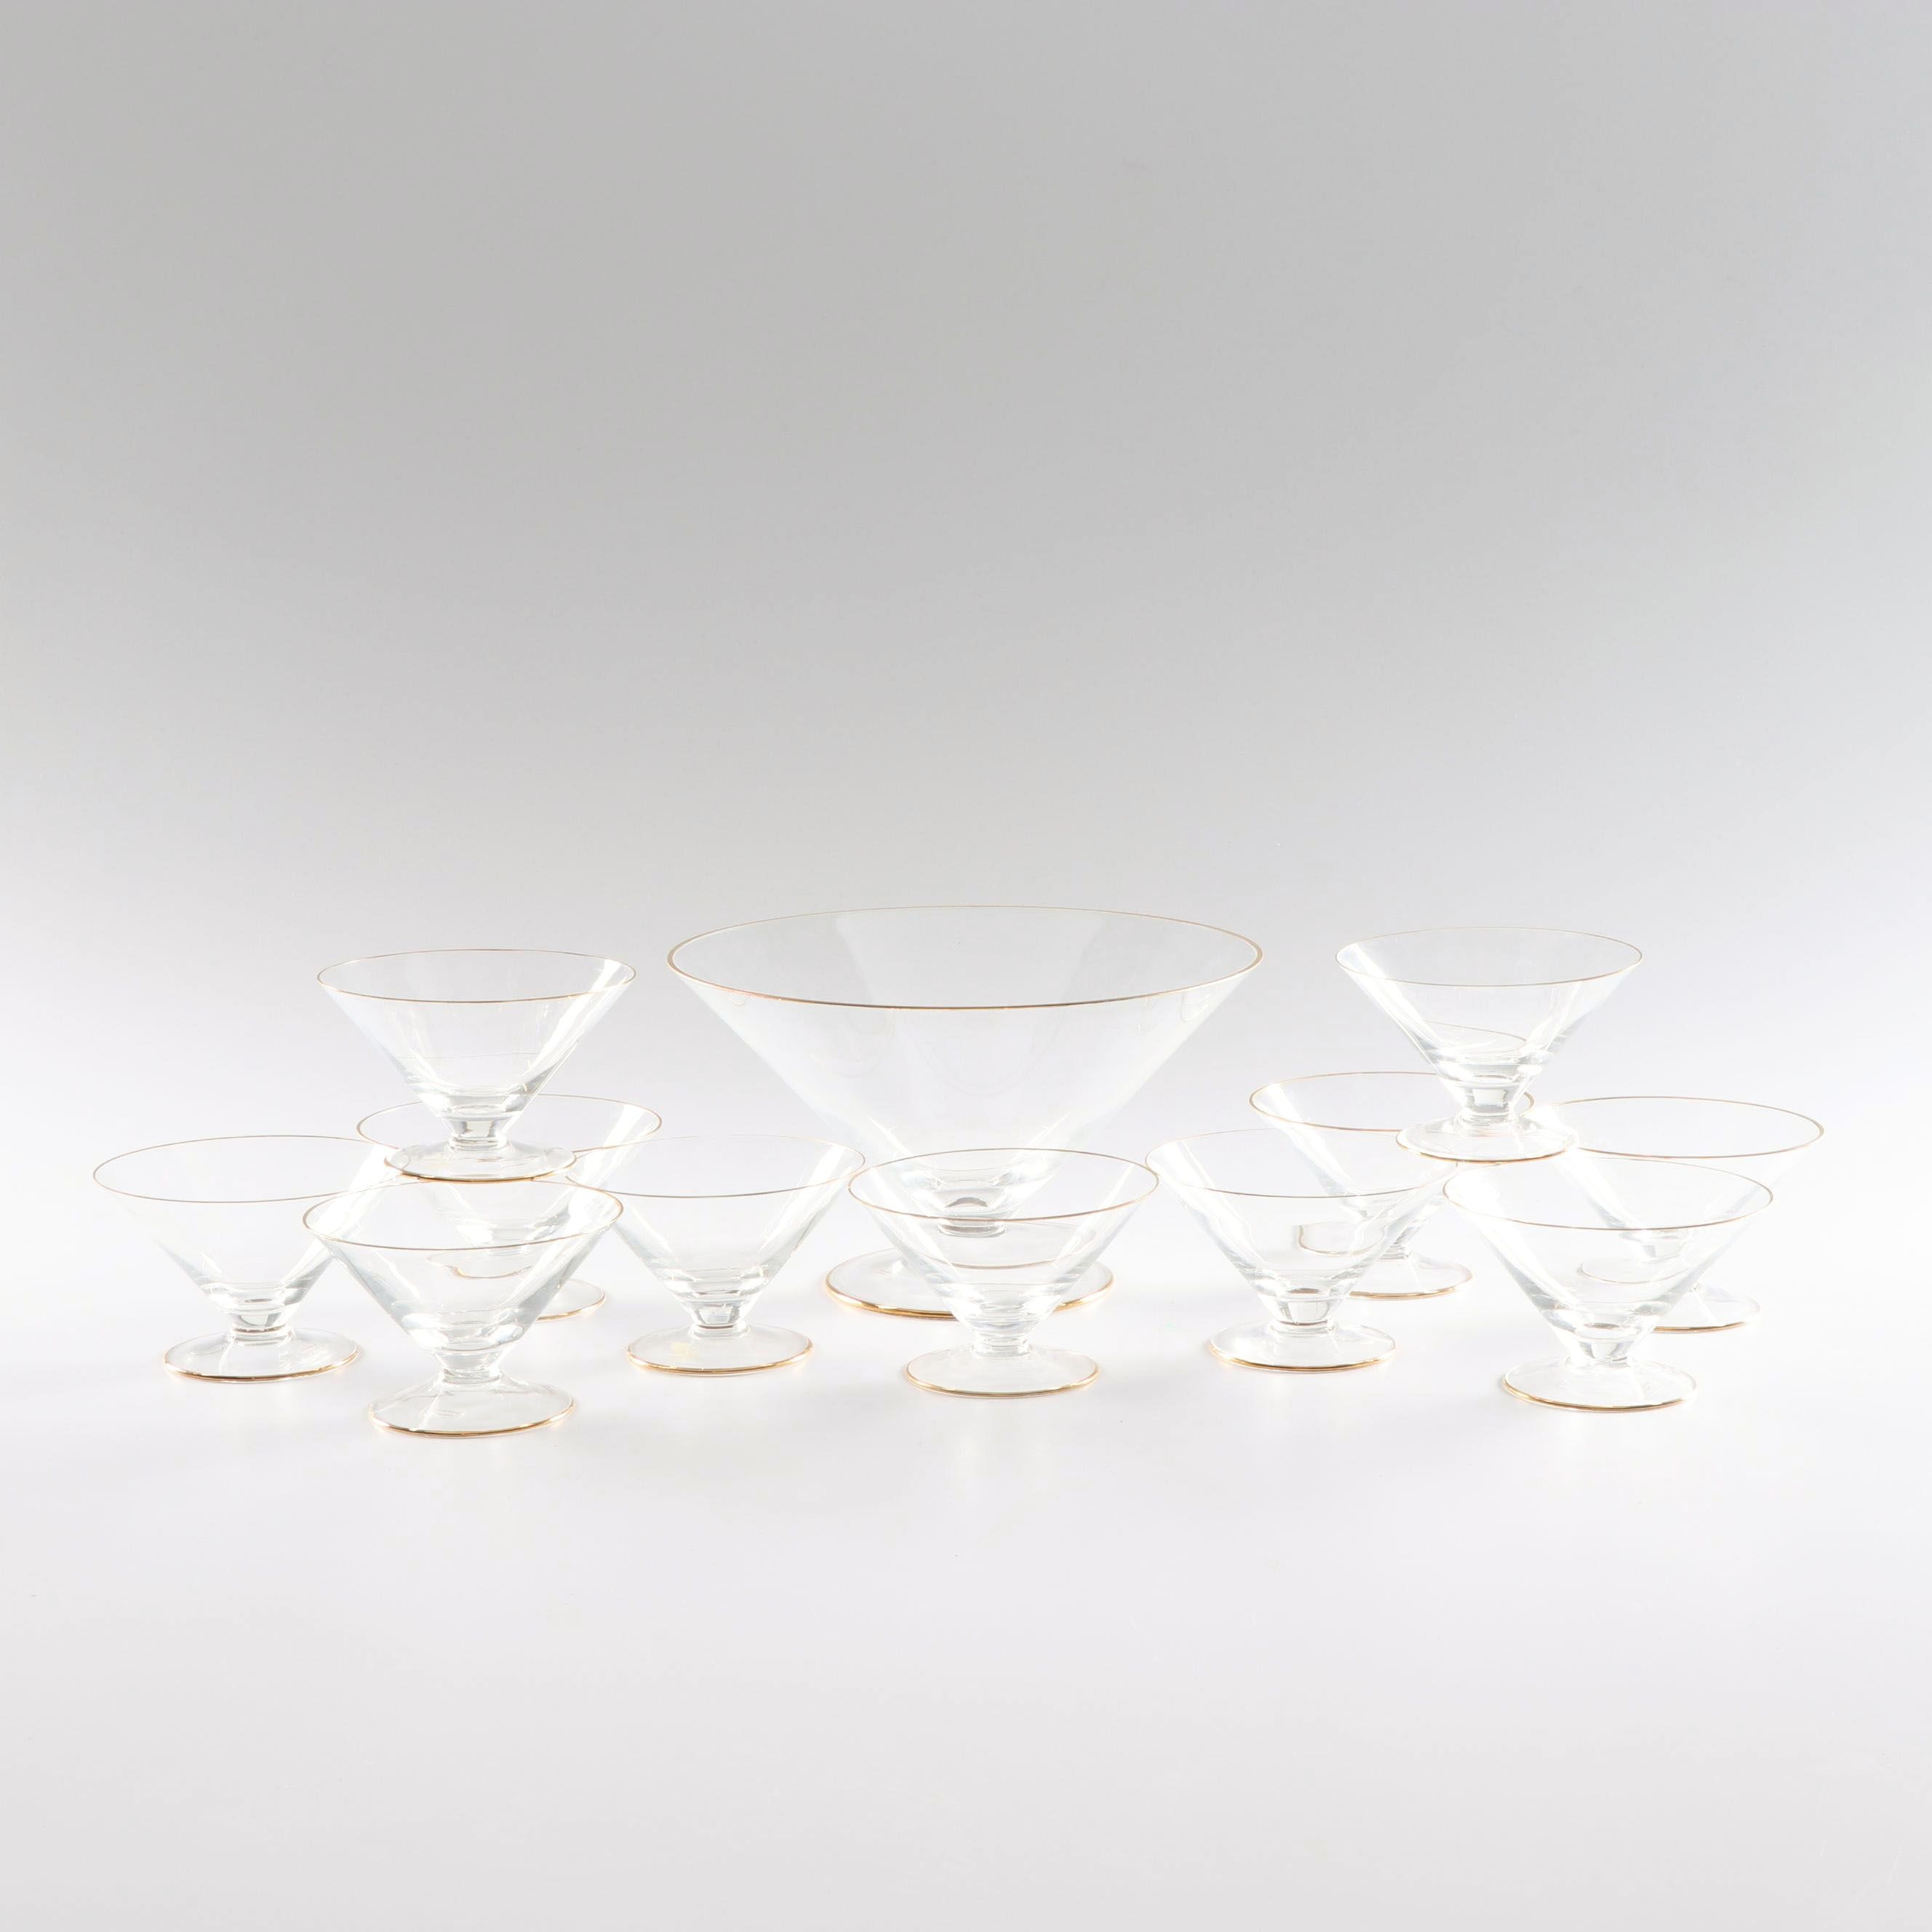 Crate & Barrel Glass Trifle Bowl and Dish Set